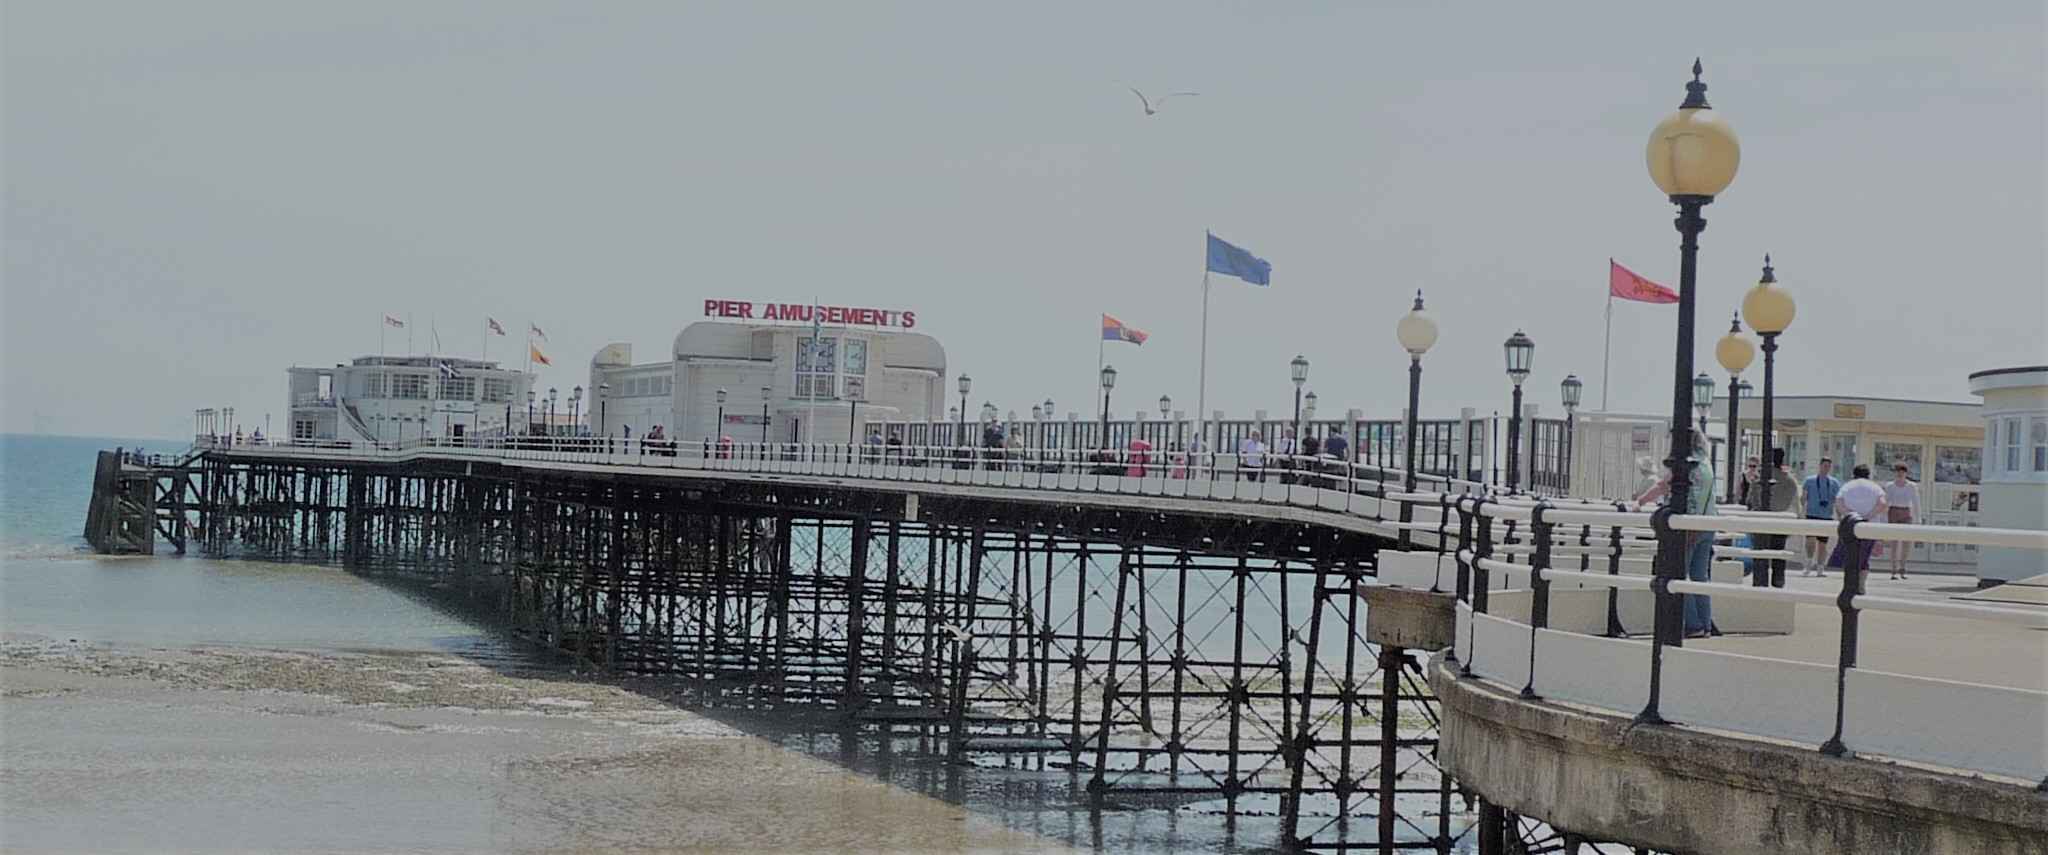 The Pier, Worthing UK